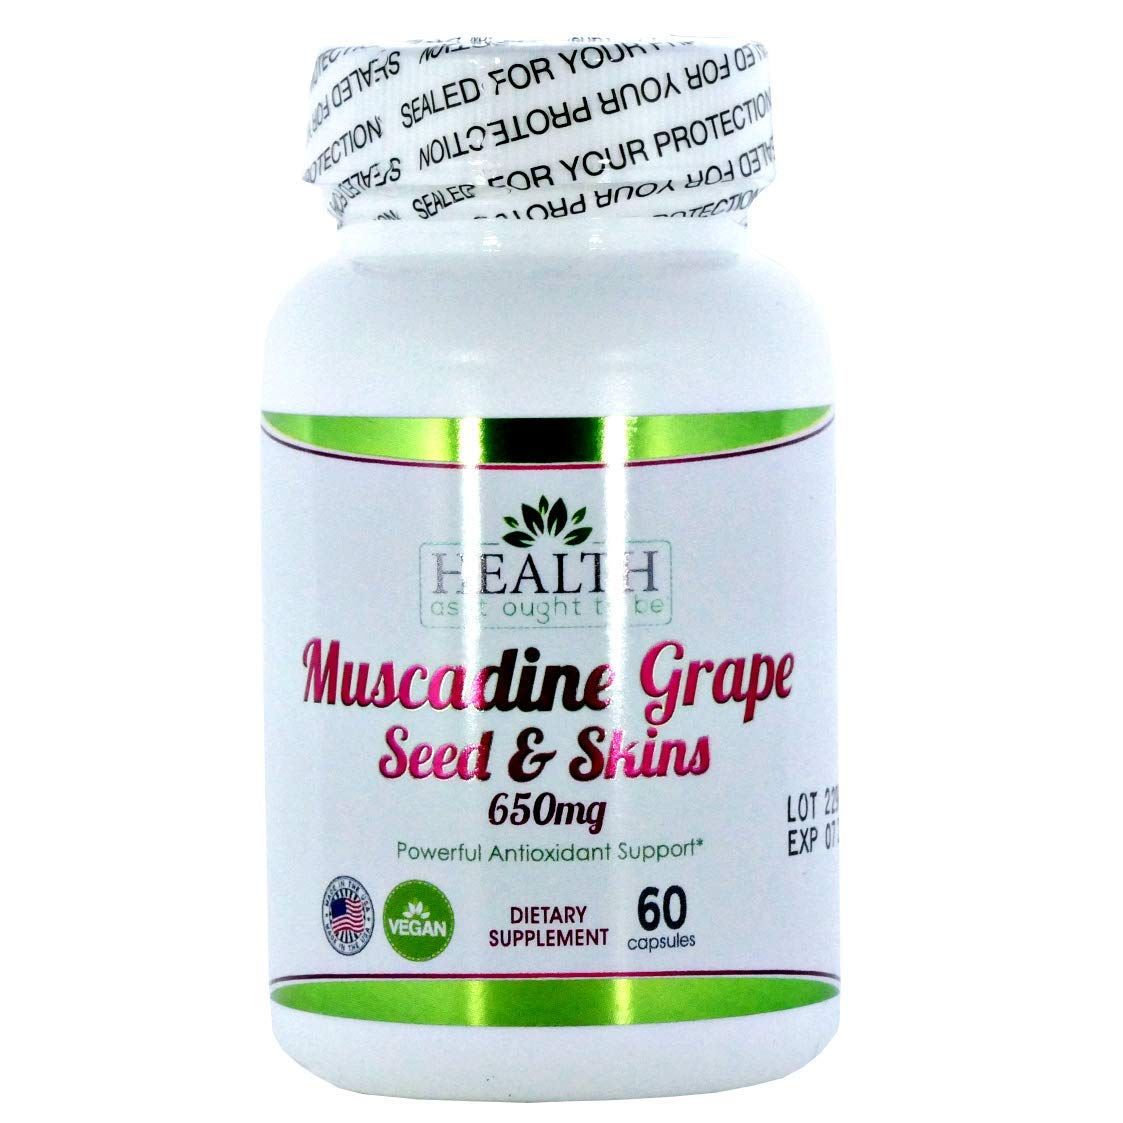 Muscadine Grape Seed & Skins 650 mg 60 Capsules Physician Formulated Powerful Antioxidant Support Beyond The Average Grape